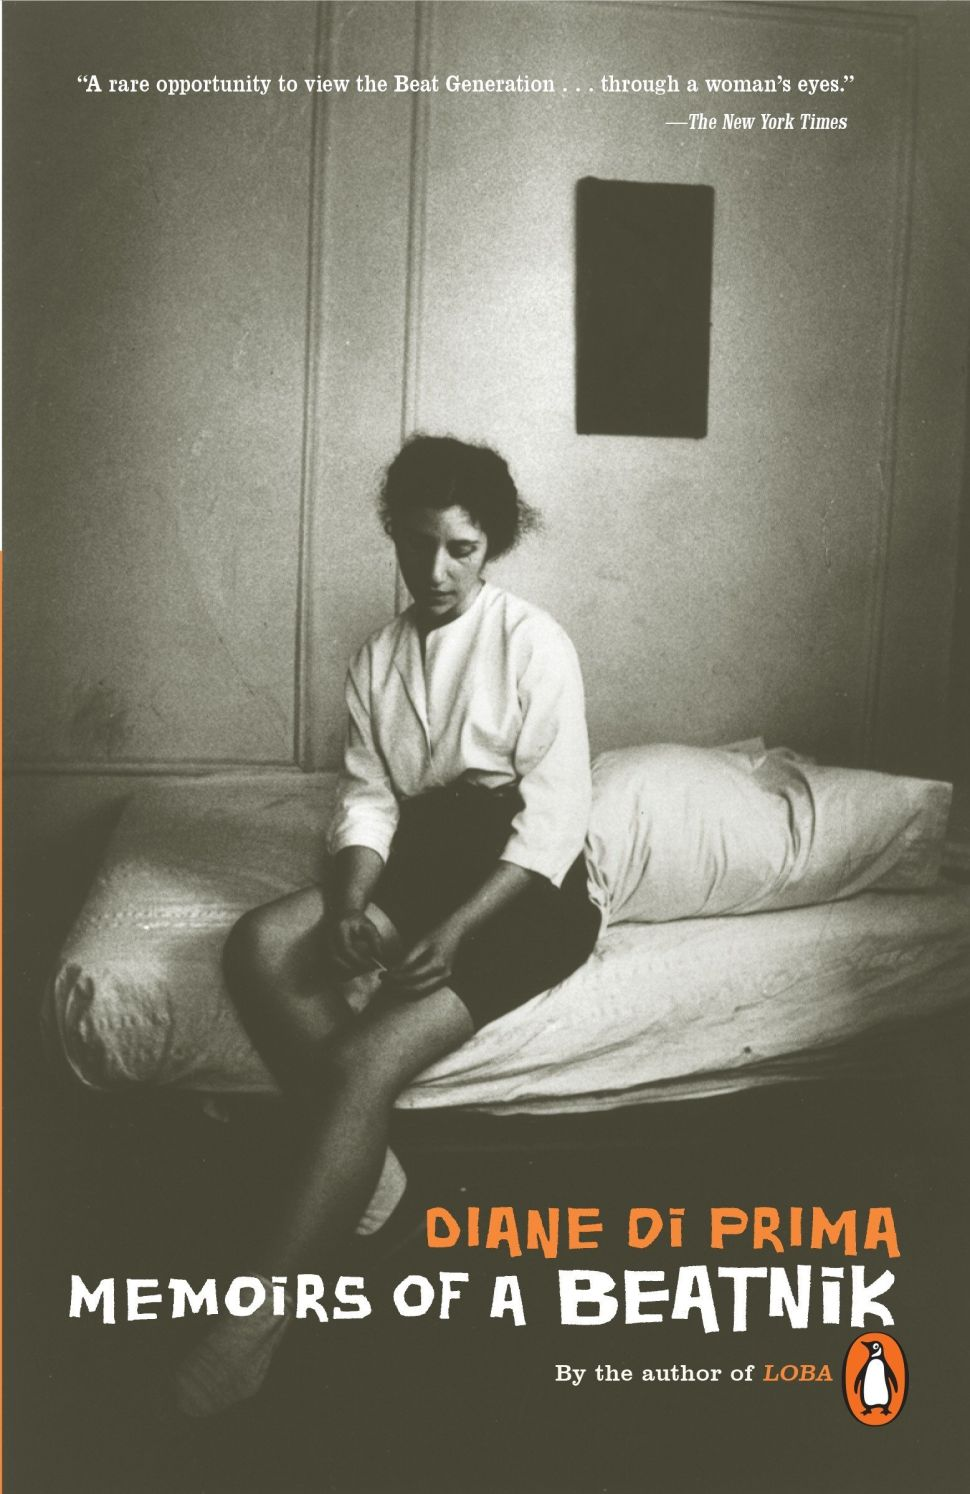 Diane di Prima Brings the Women of the Beat Generation to the Forefront in a New Book